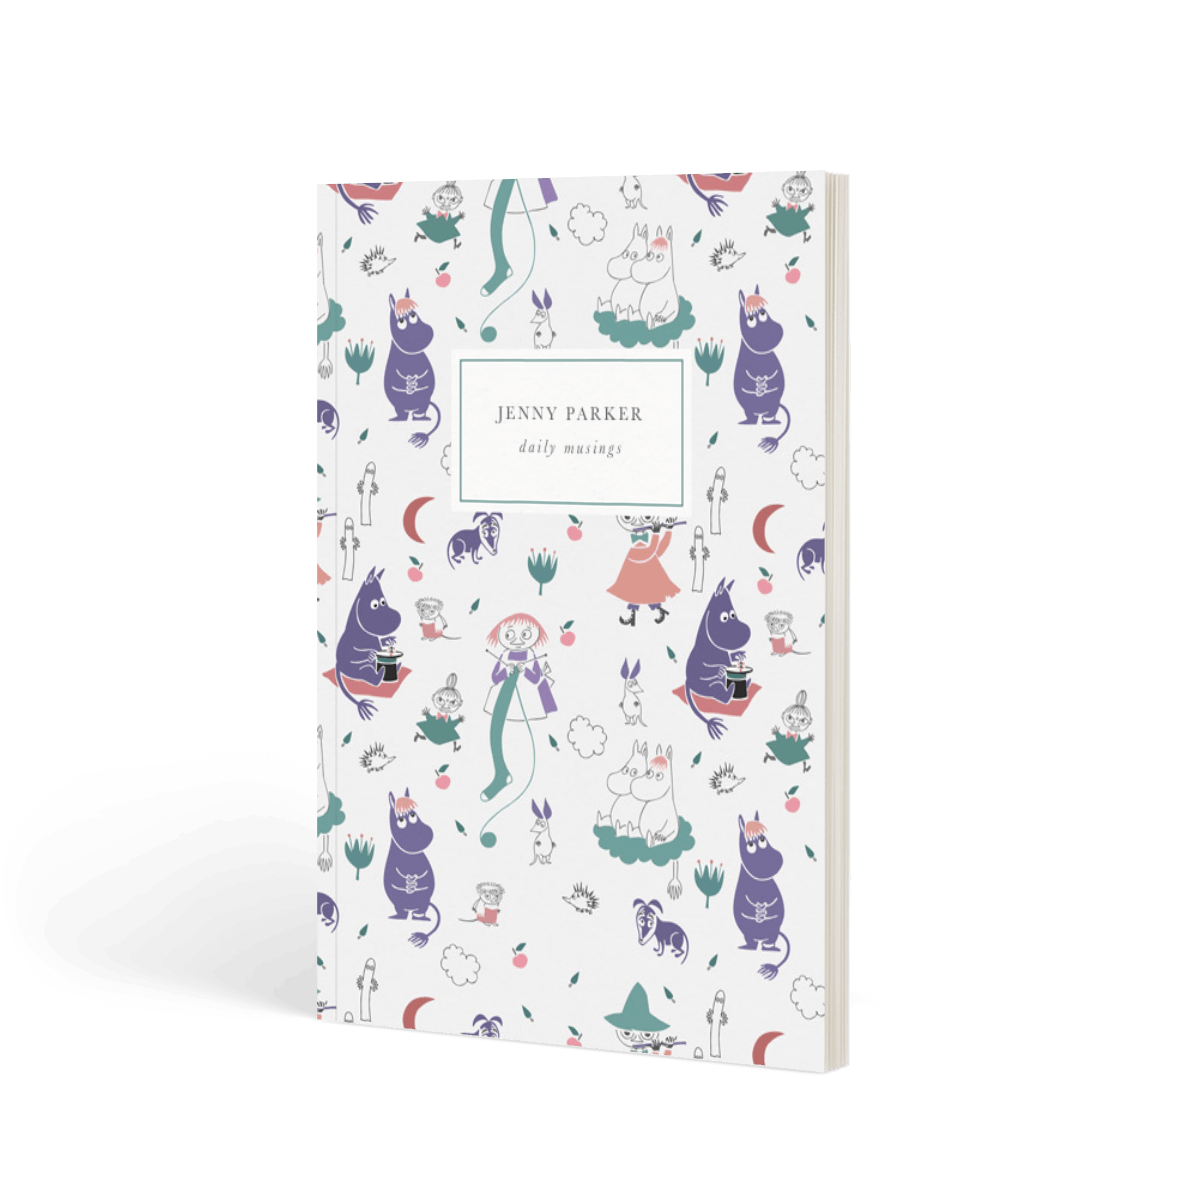 Https%3a%2f%2fwww.papier.com%2fproduct image%2f54615%2f6%2fpurple moomins 13129 front 1542298715.png?ixlib=rb 1.1